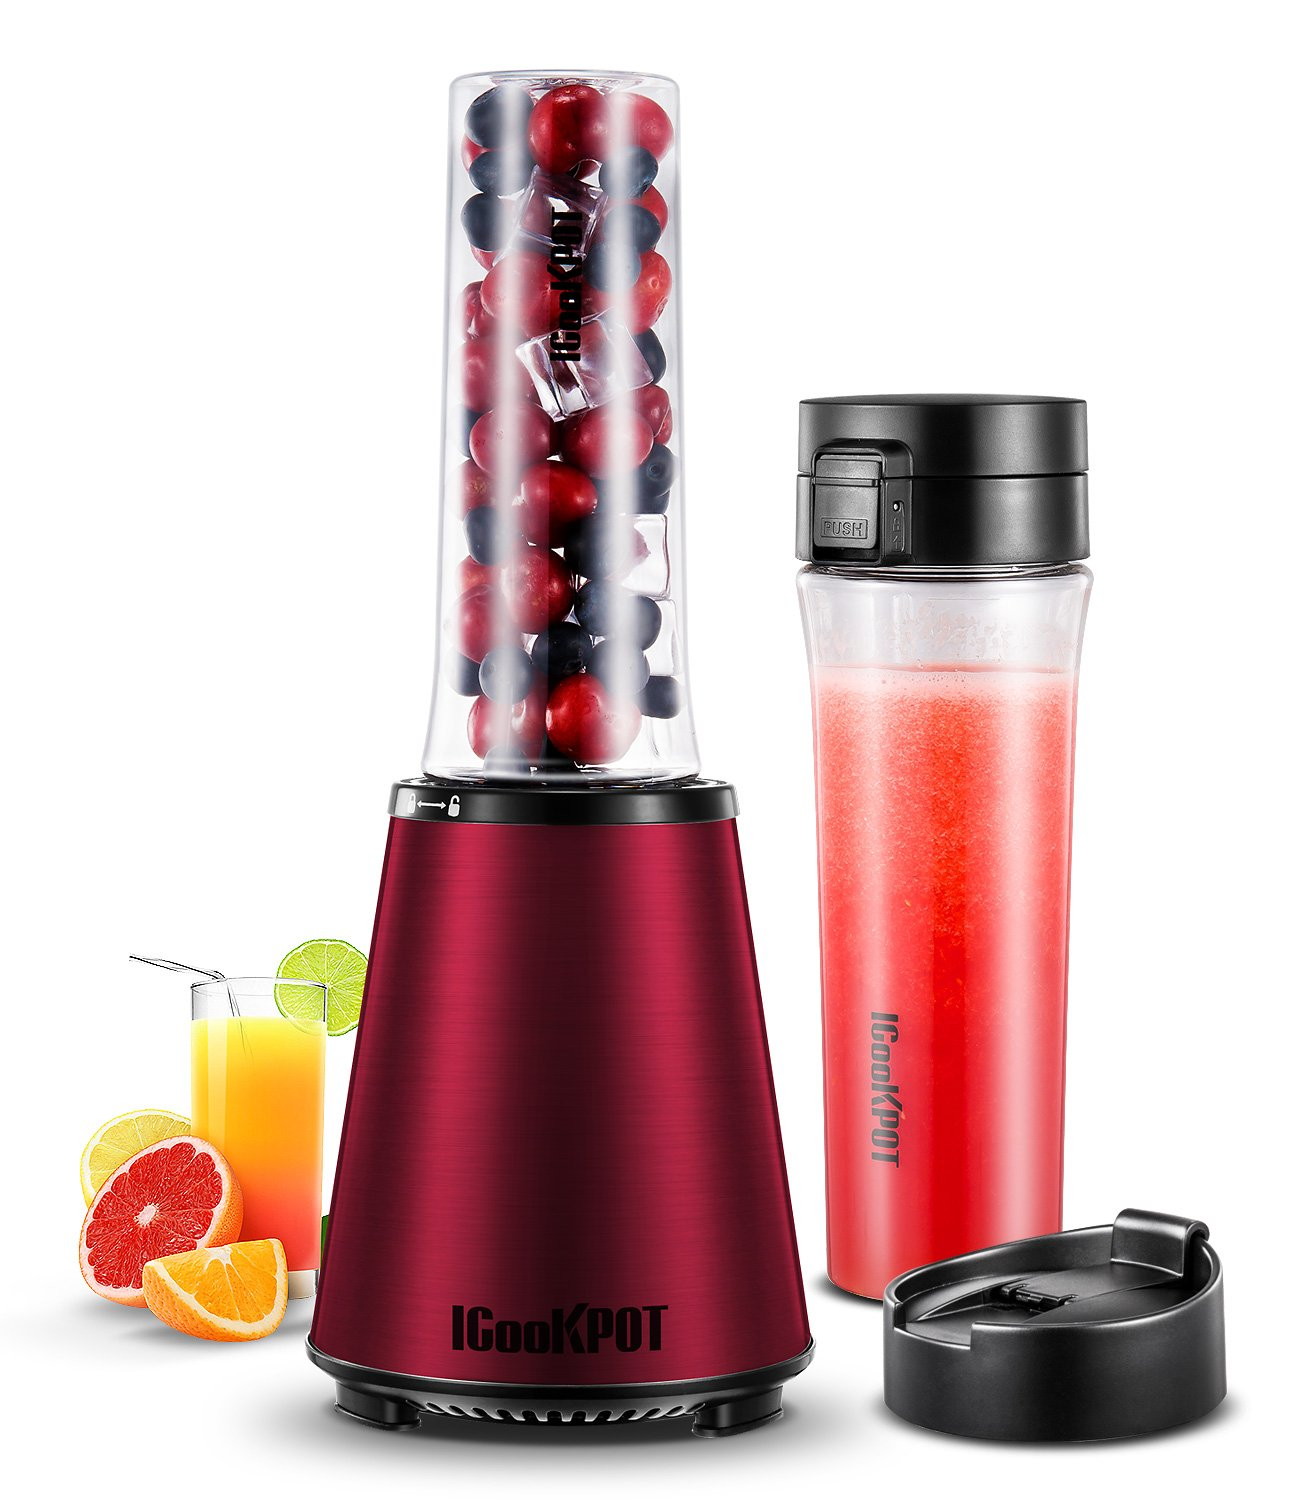 ICOOKPOT Smoothies Blender Electric Personal Size Blender for Shakes and Smoothies Frozen Fruit Vegetable Juice Blender Baby Food Maker With 2 BPA-Free Portable Sport Bottles Red Ice Blender